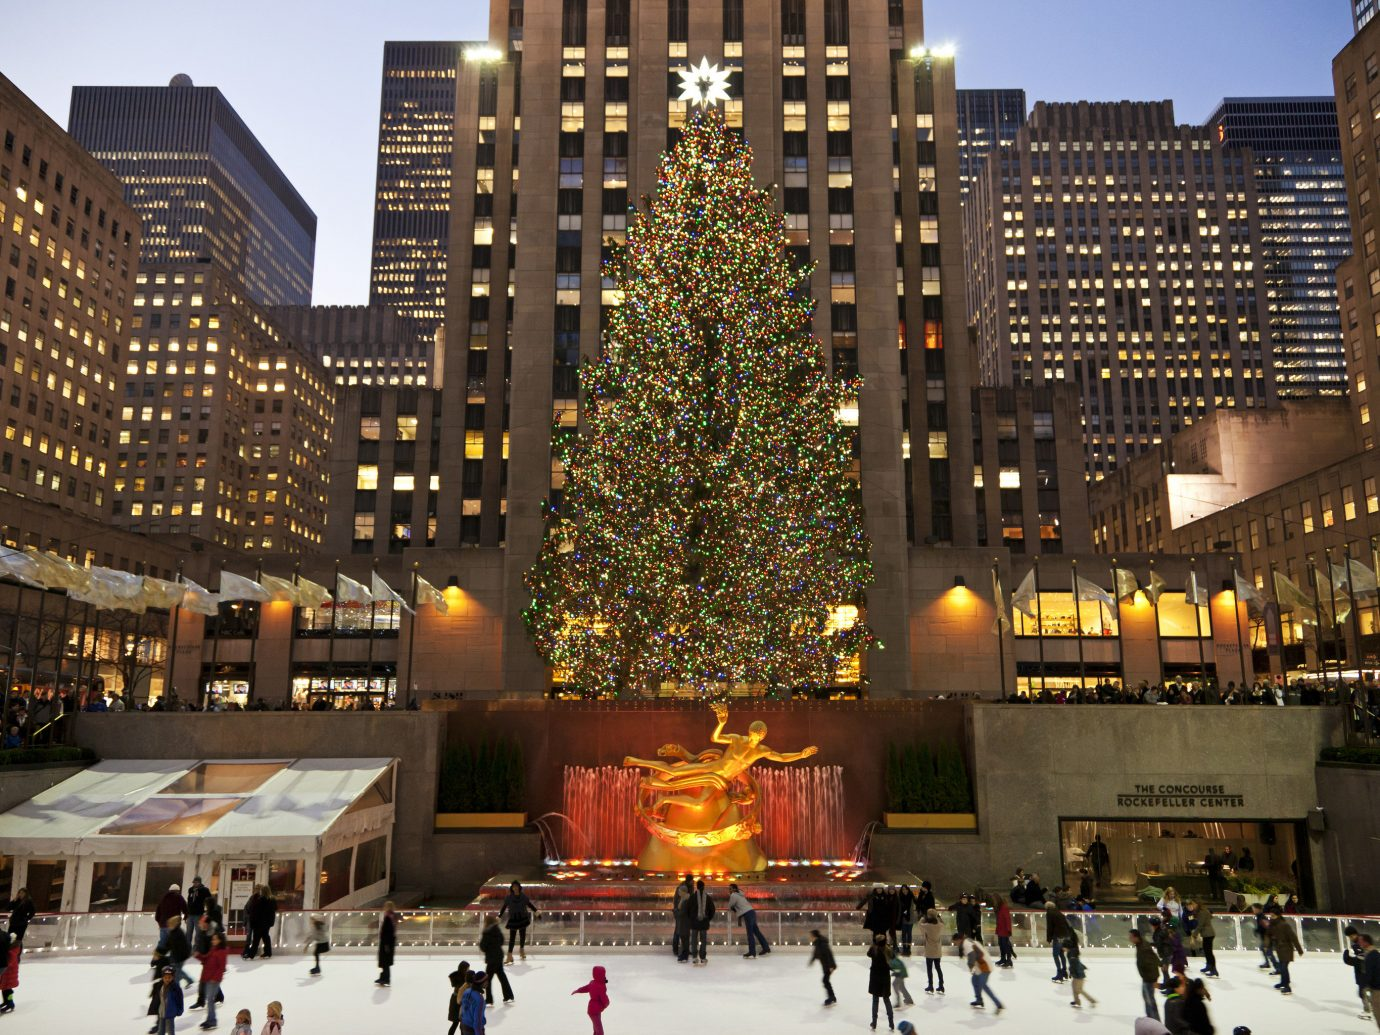 Trip Ideas outdoor building rink sky metropolitan area City landmark night human settlement metropolis people plaza Downtown evening cityscape shopping mall ice rink town square